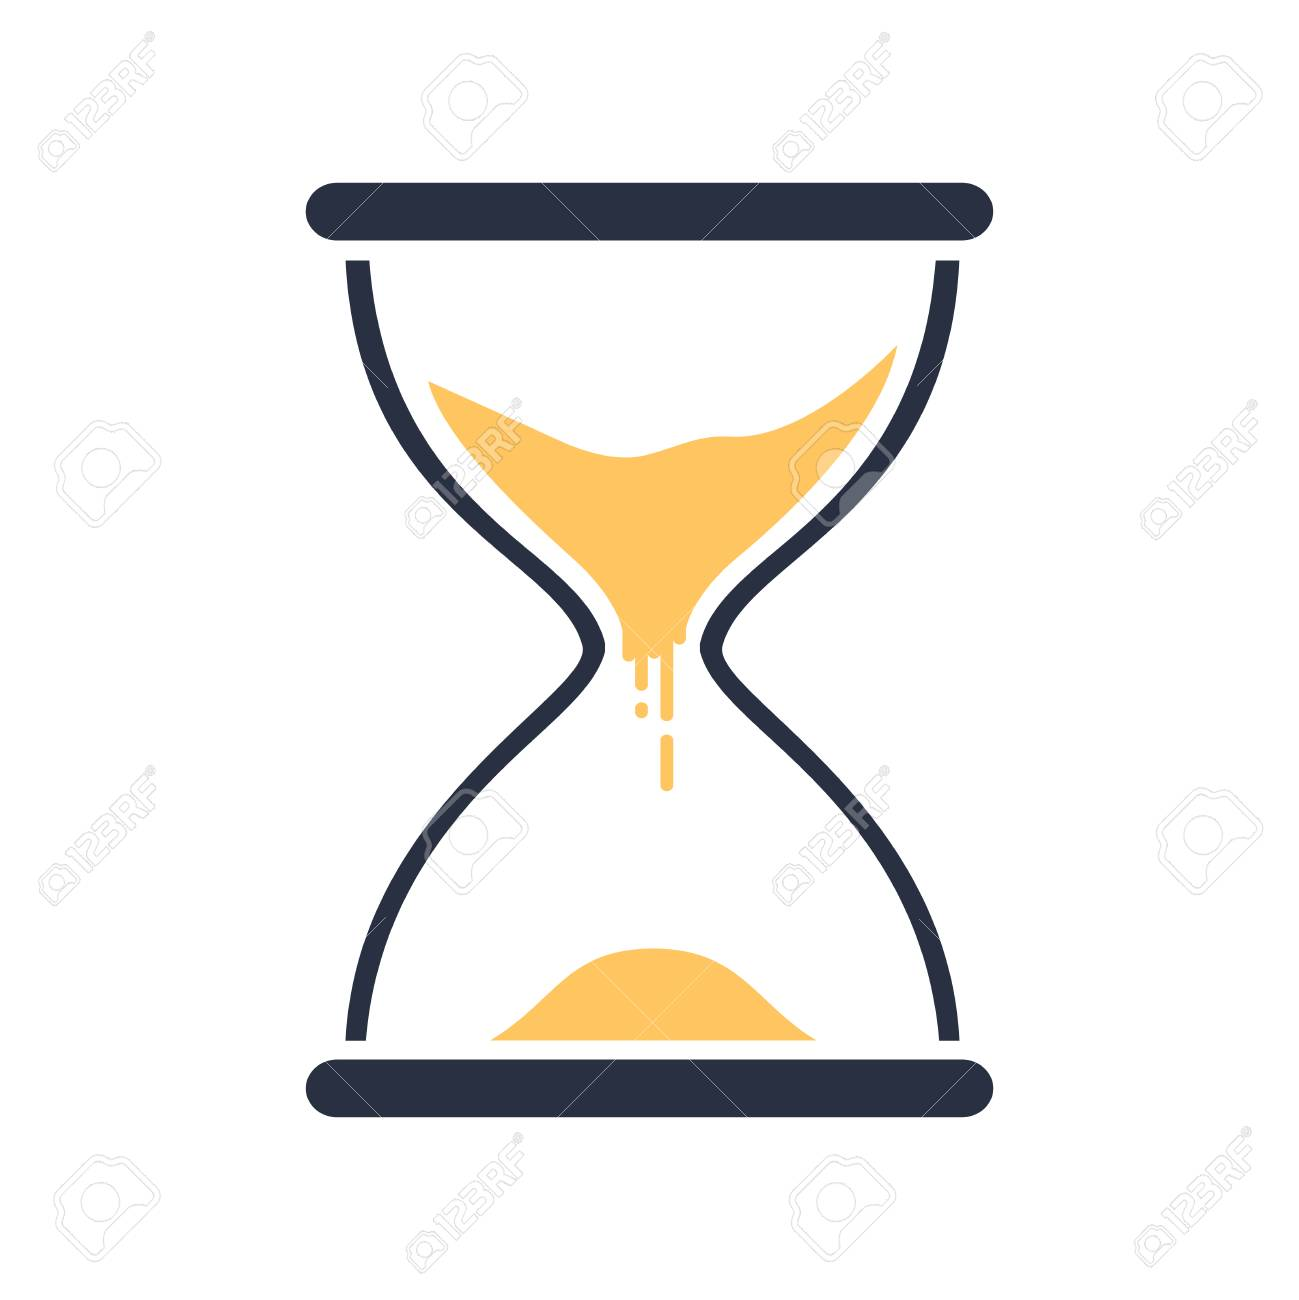 Image result for hour glass